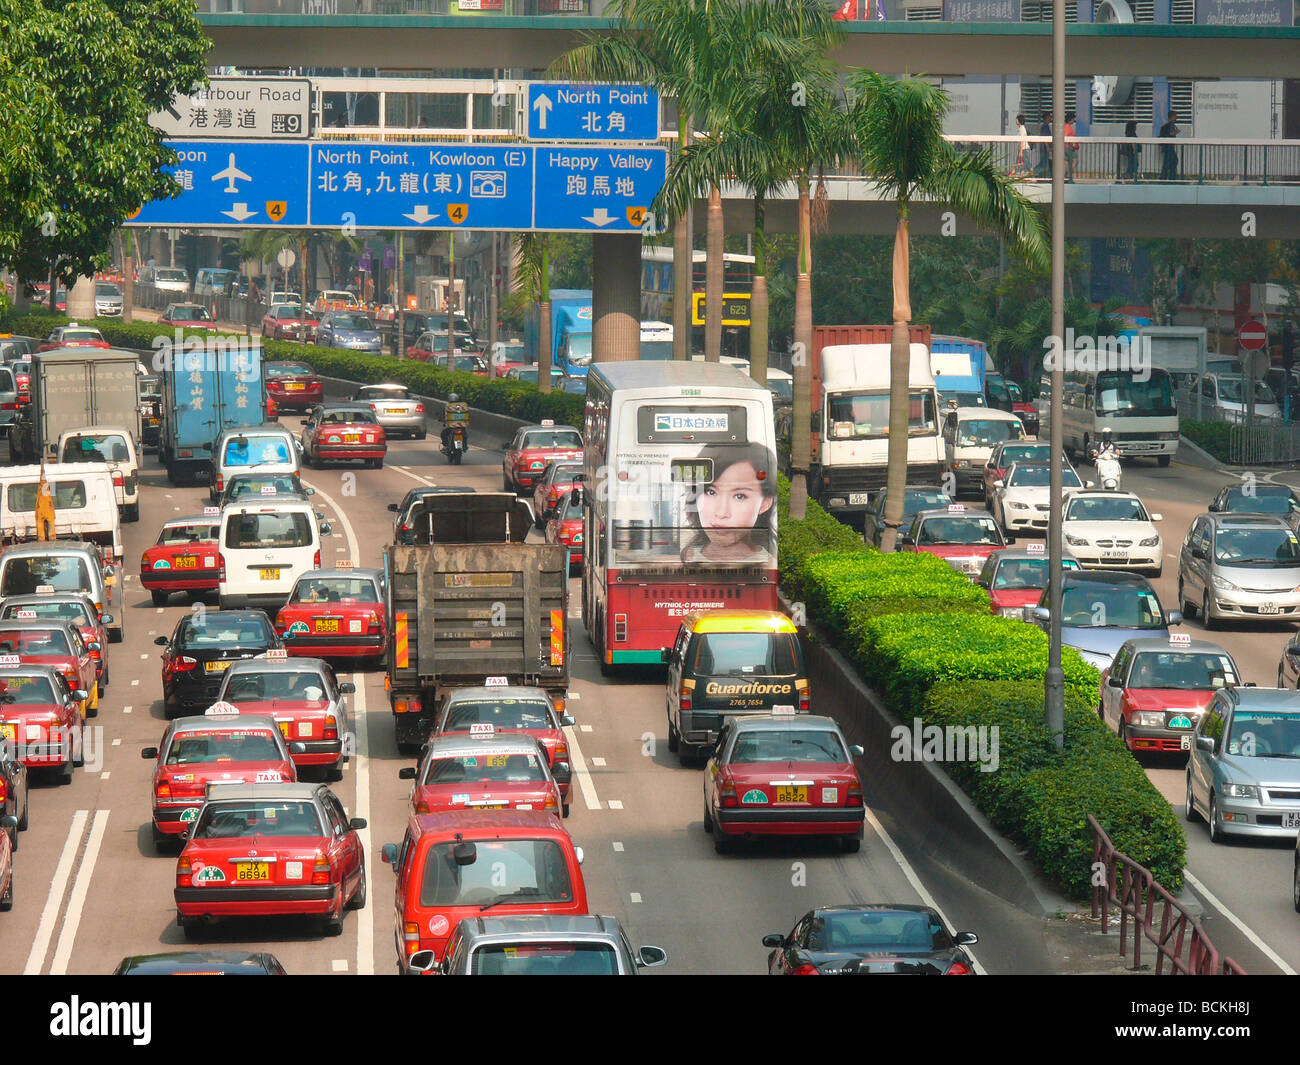 China Hong Kong traffic scene in Wan Chai district - Stock Image